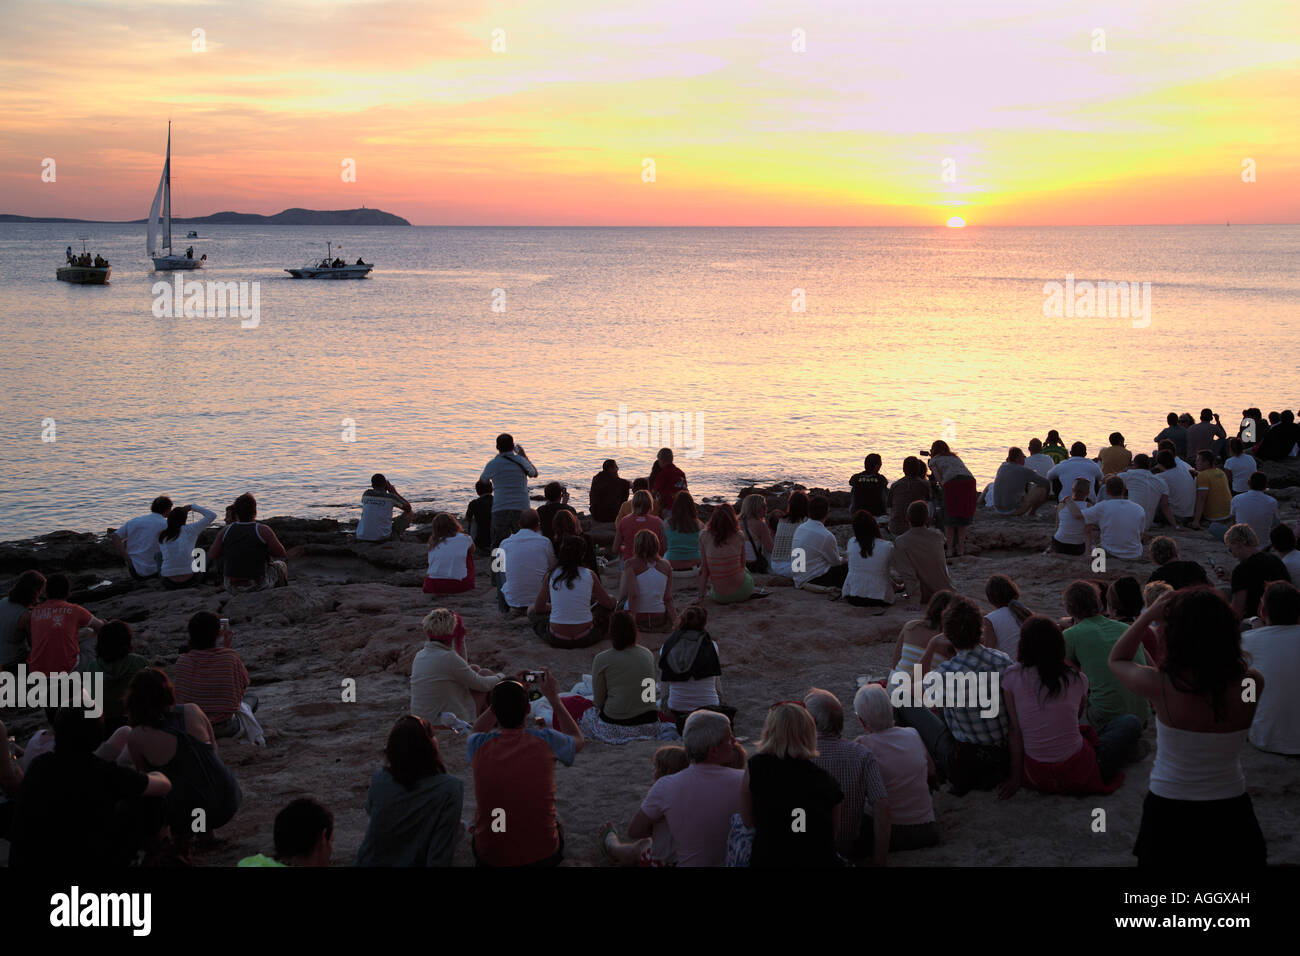 Tourists at Cafe del Mar, watching the sunset, Ibiza, Spain - Stock Image